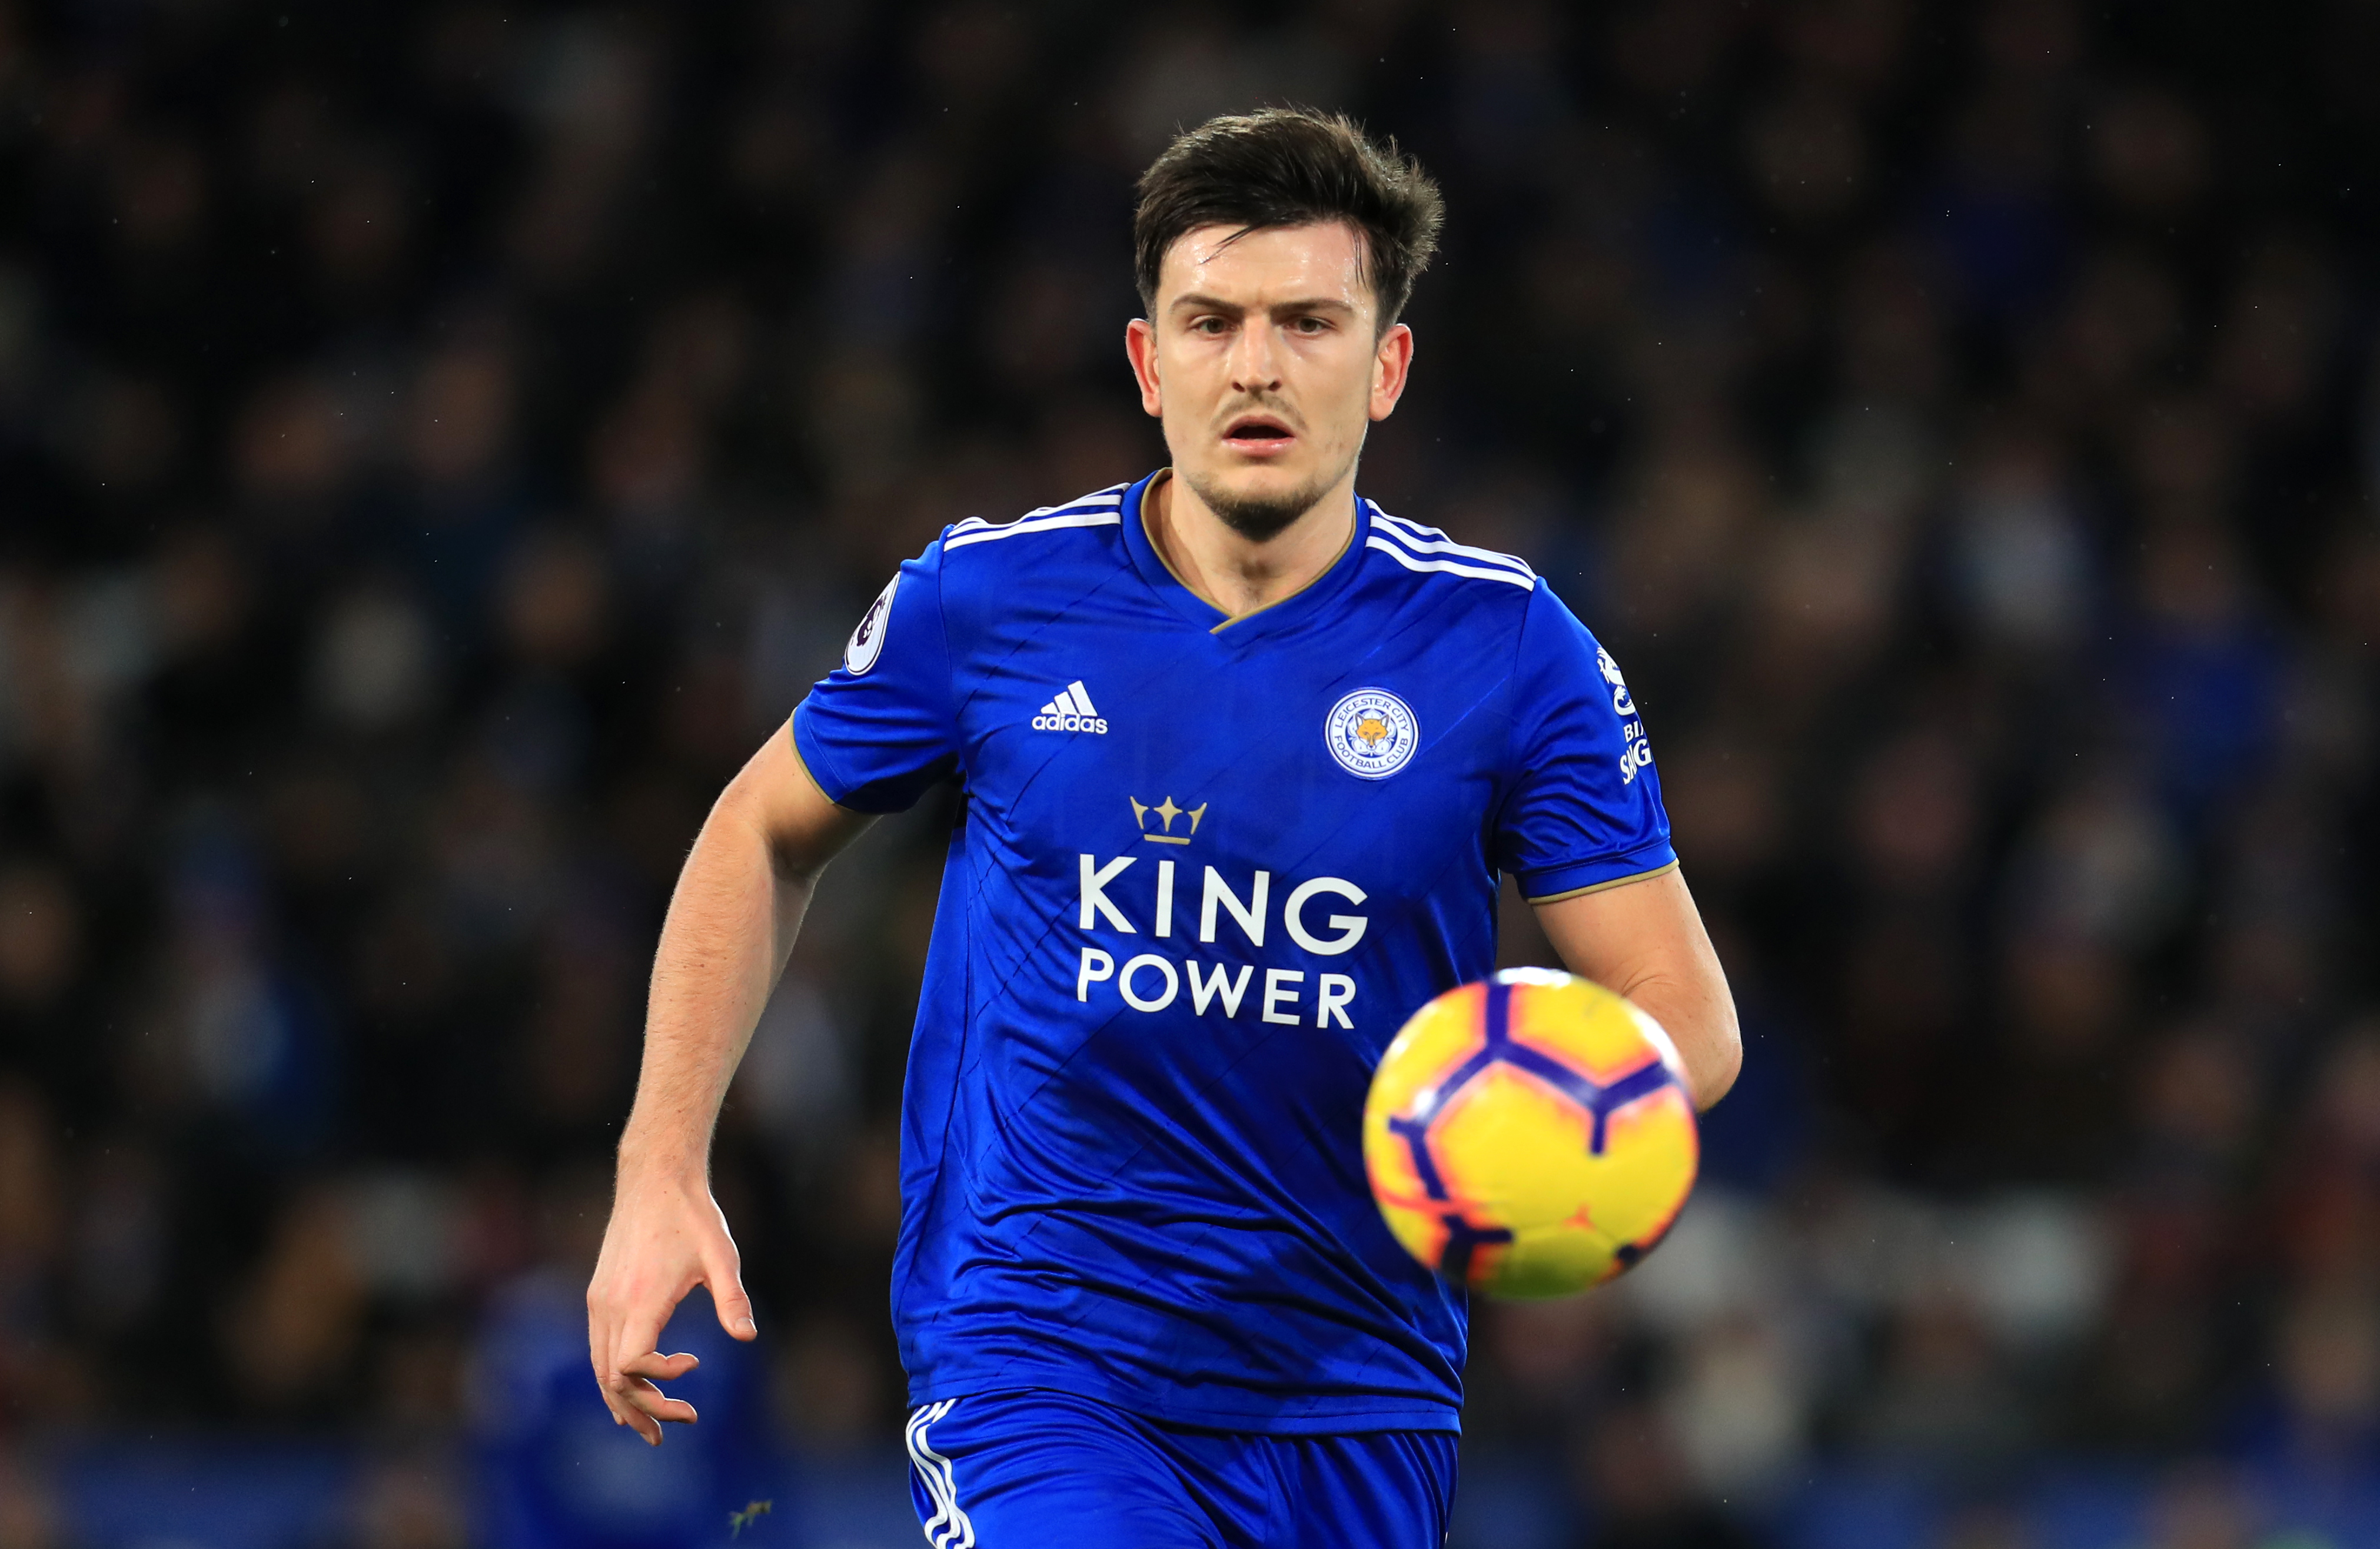 Transfer Gossip: Man United pull out of Maguire race, Torreira dismisses AC Milan links